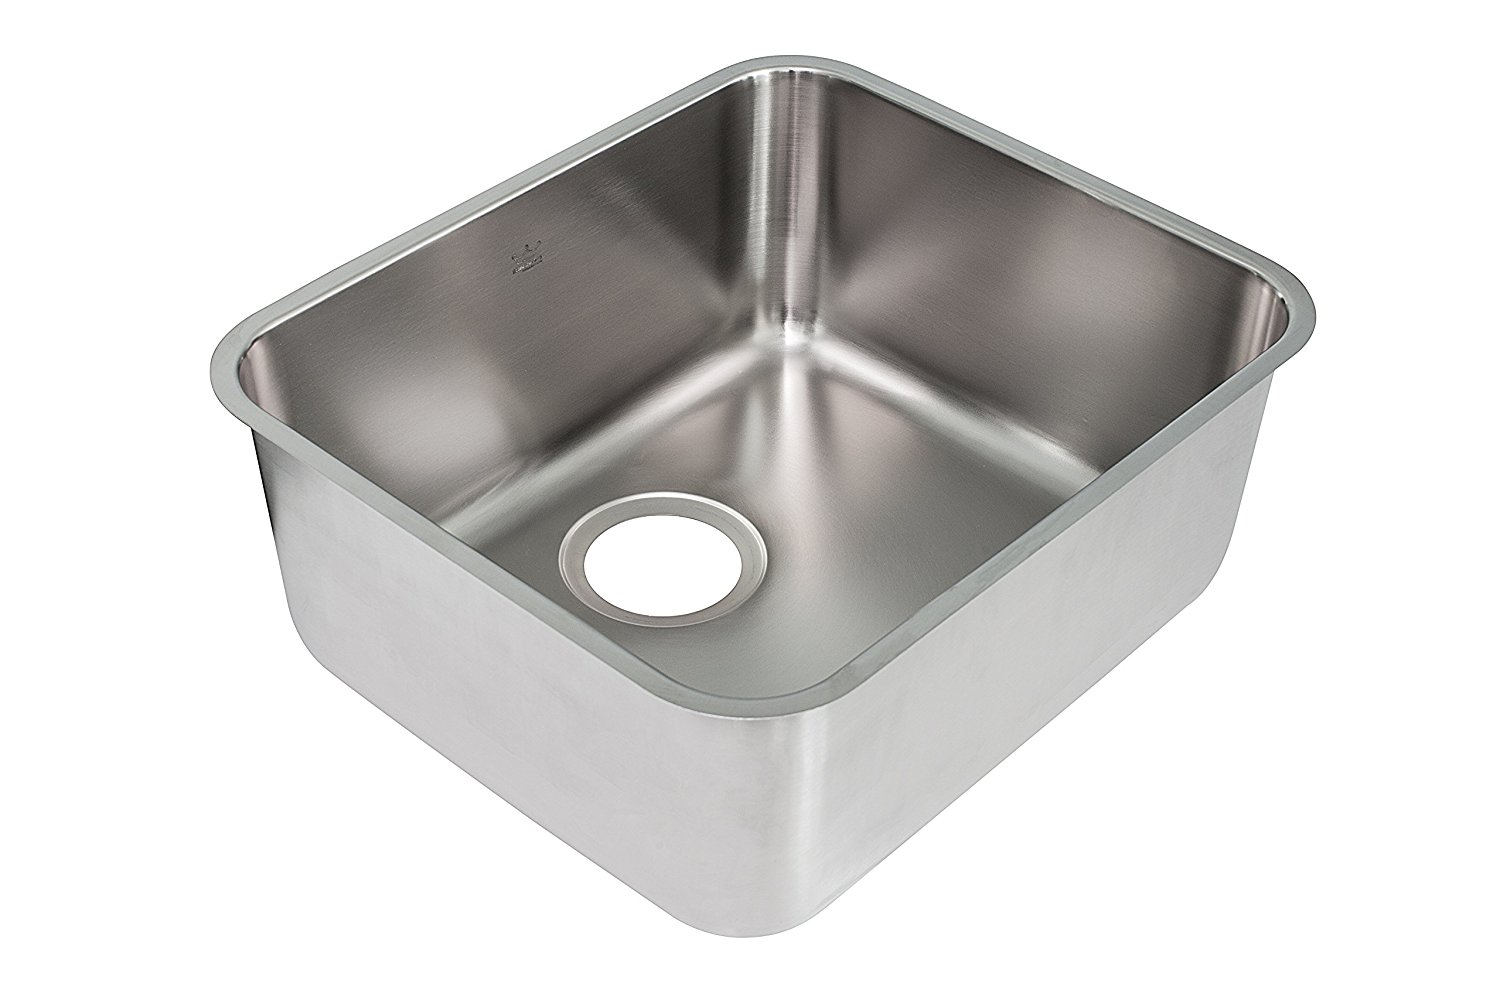 Franke KBSU1916 20-Gauge Stainless Steel Single Bowl Undermount ...